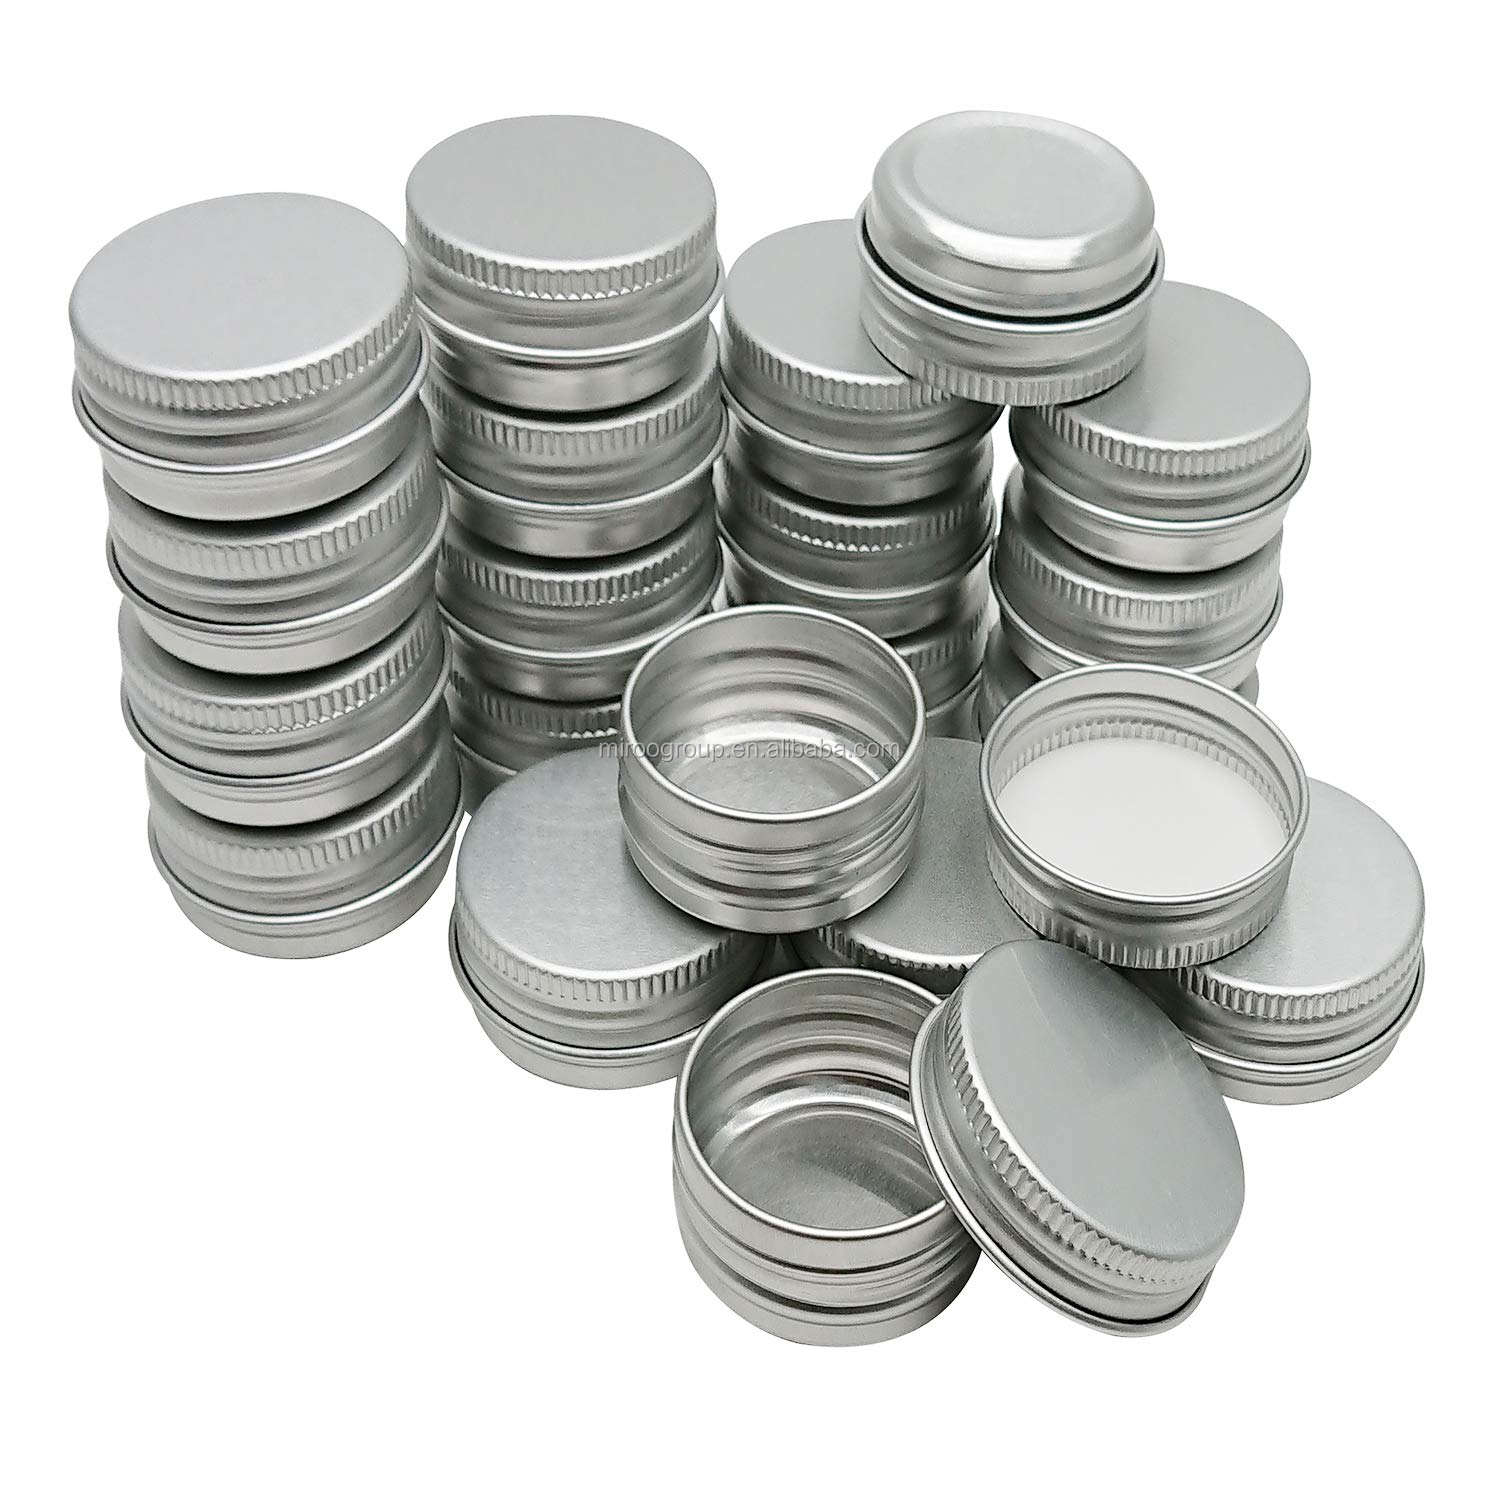 5ml-60ml Silver Aluminum Tins Cans Screw Top Round Steel tins Cans with Screw Lid Containers